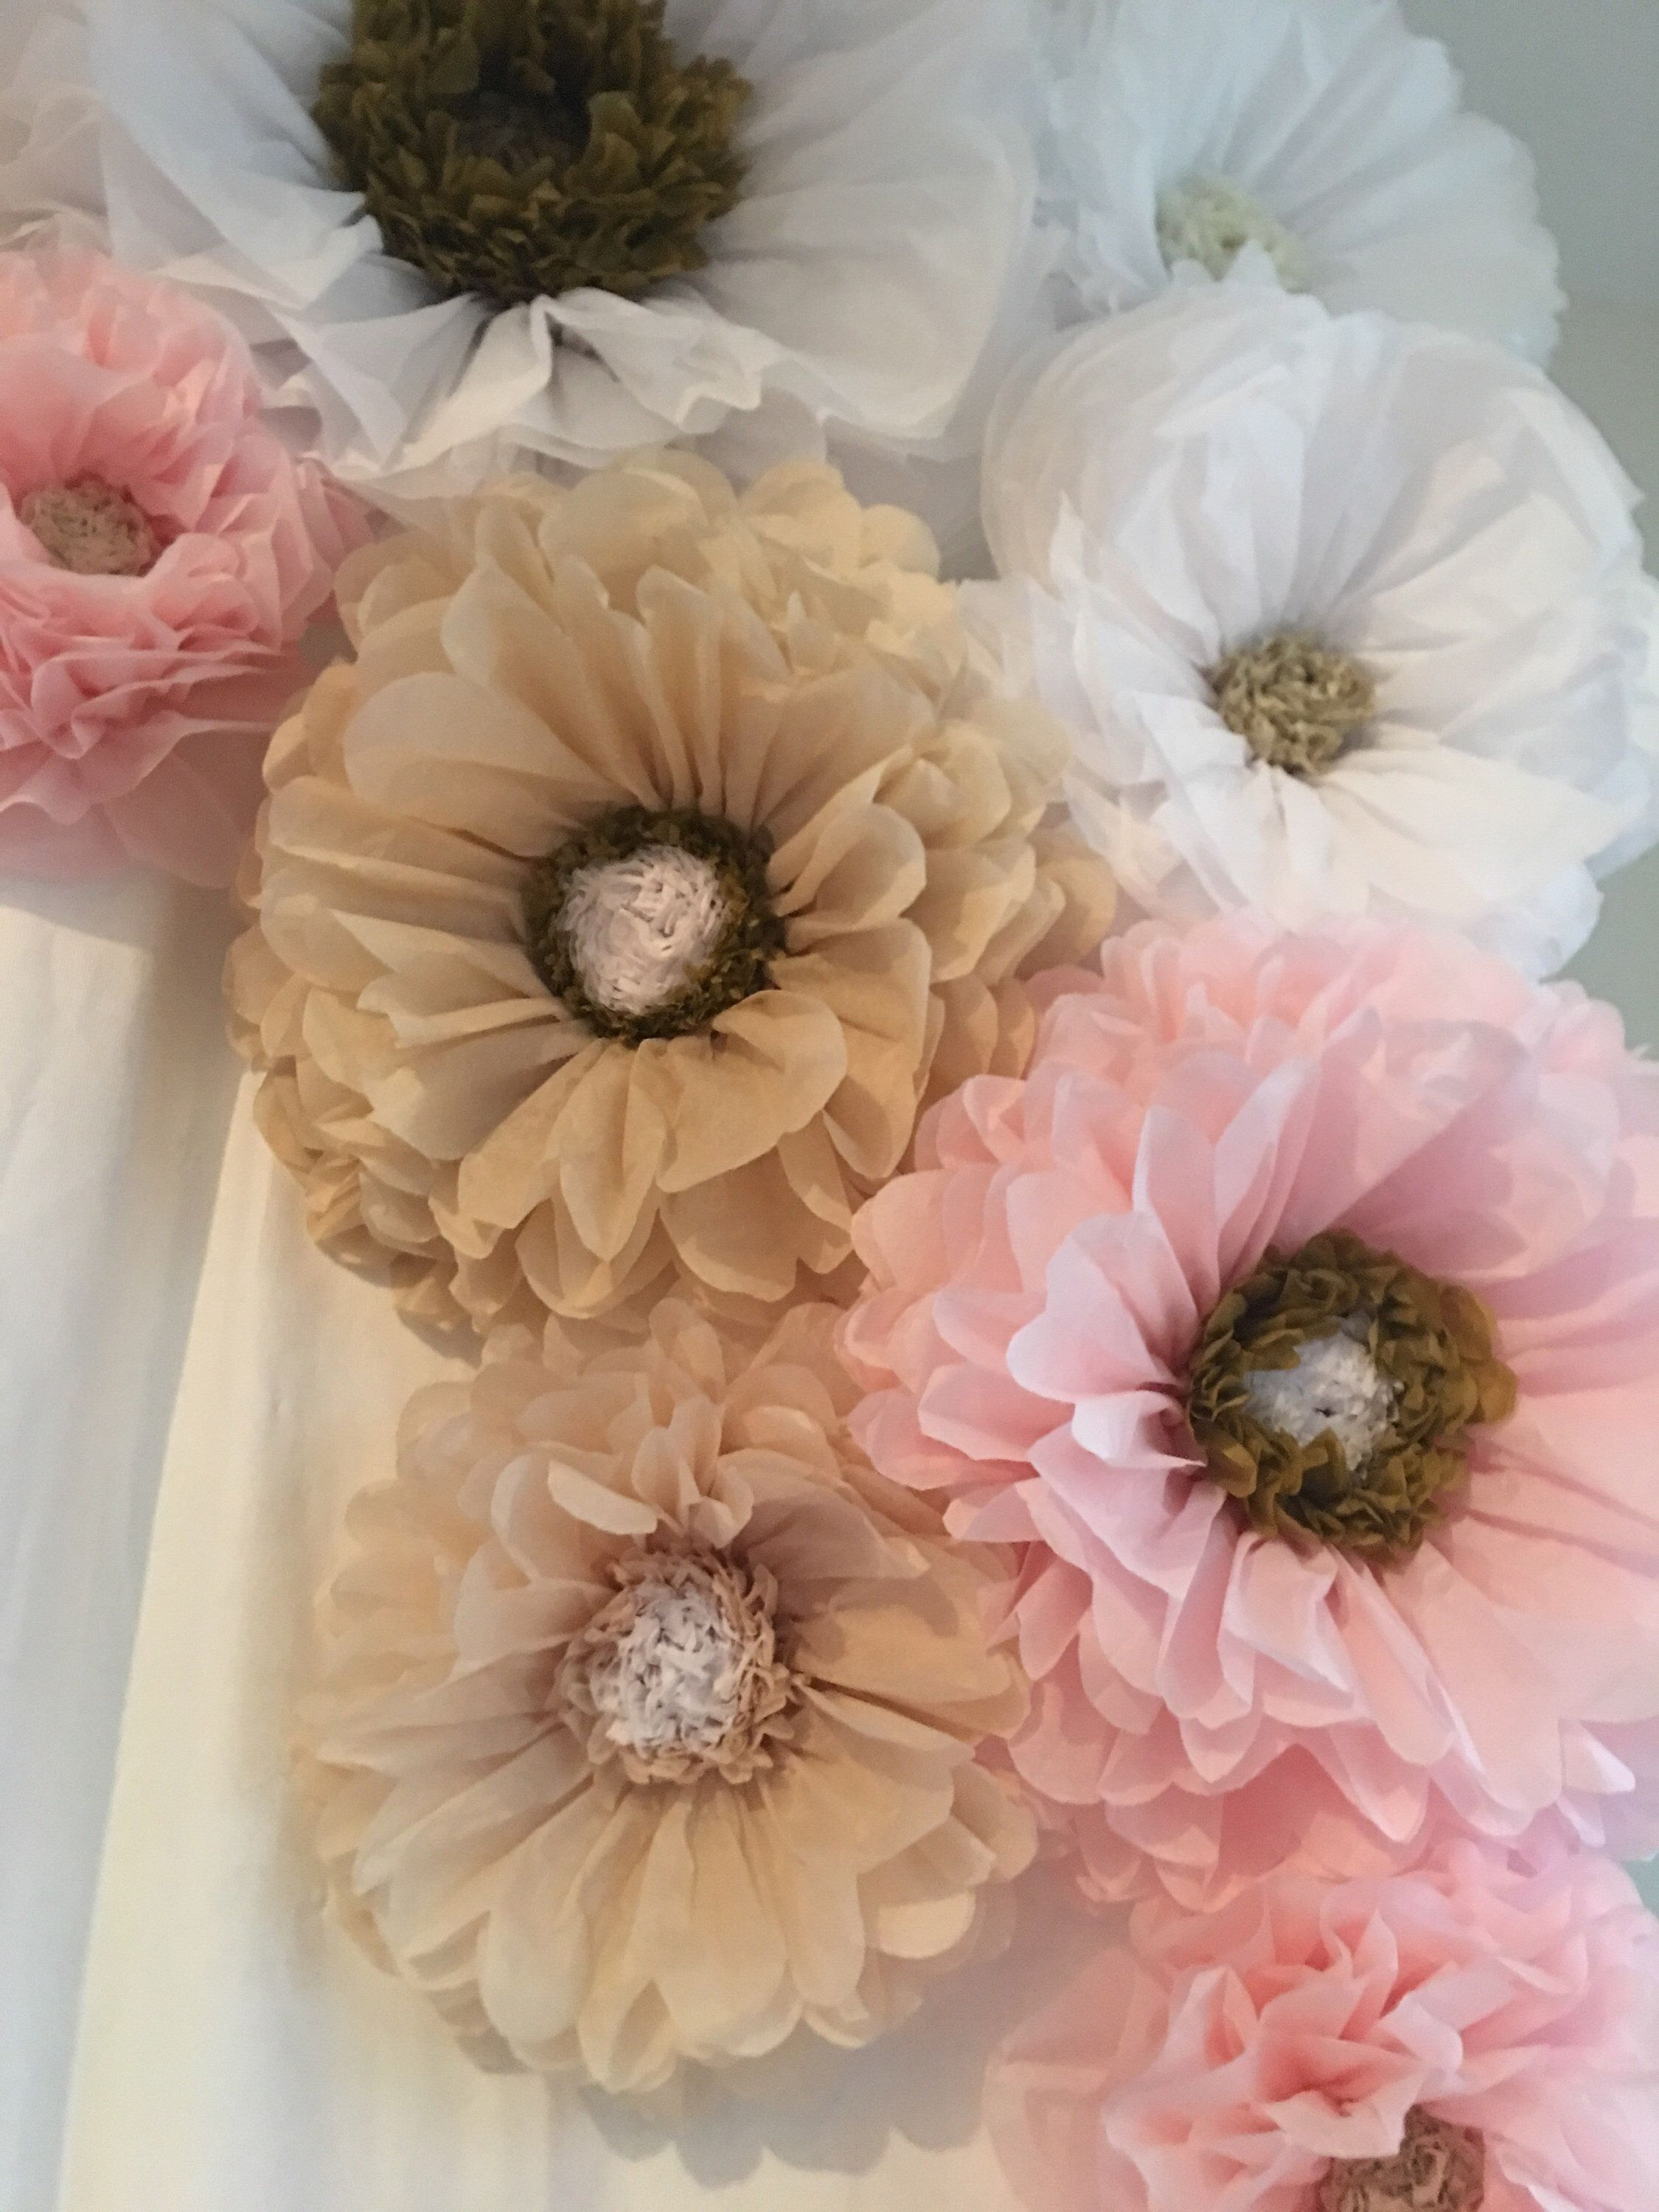 Pink White And Champagne Paper Flower Backdrop Gorgeous For Weddings Quinceaneras Sweet Sixteen Parties And Bridal Showers Flower Backdrop Paper Flower Backdrop Paper Flowers